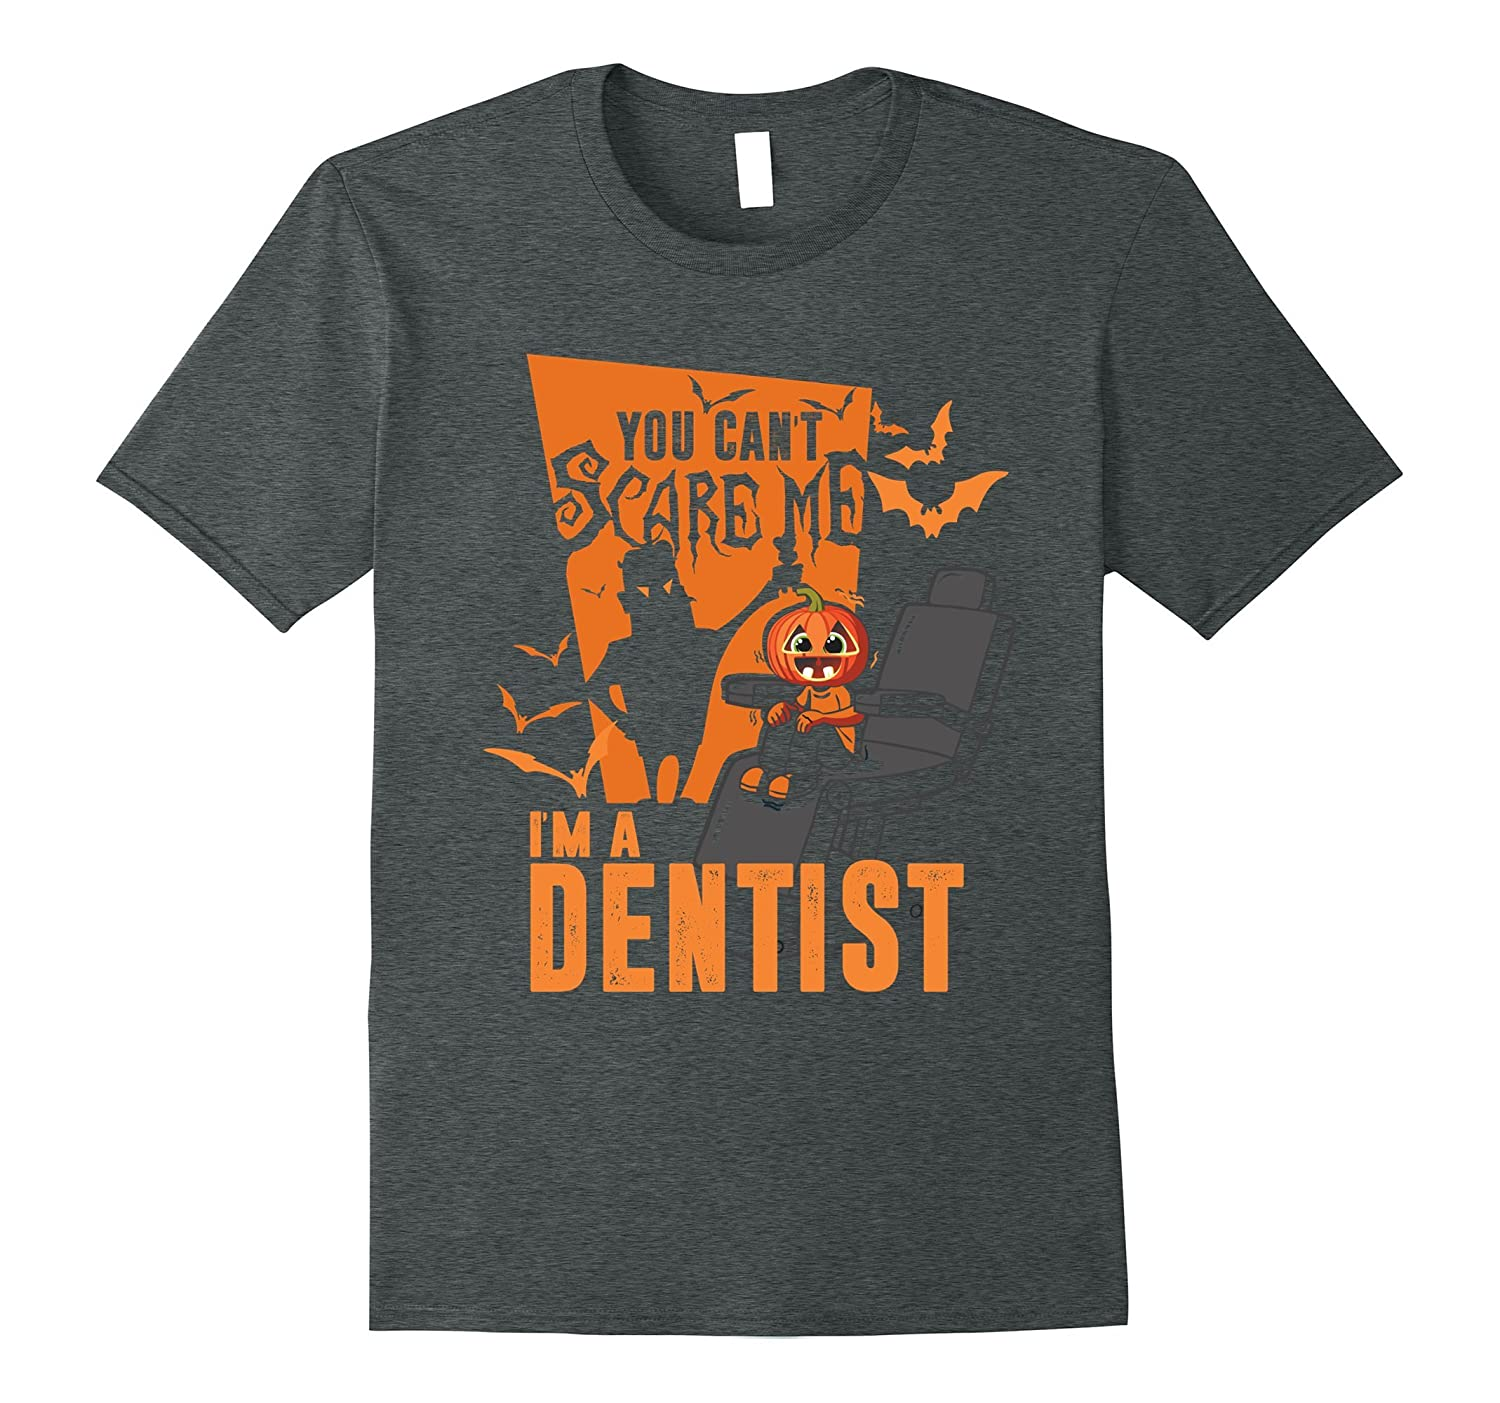 You Can't Scare Me I'm A Dentist T-Shirt Dentist Halloween-CL